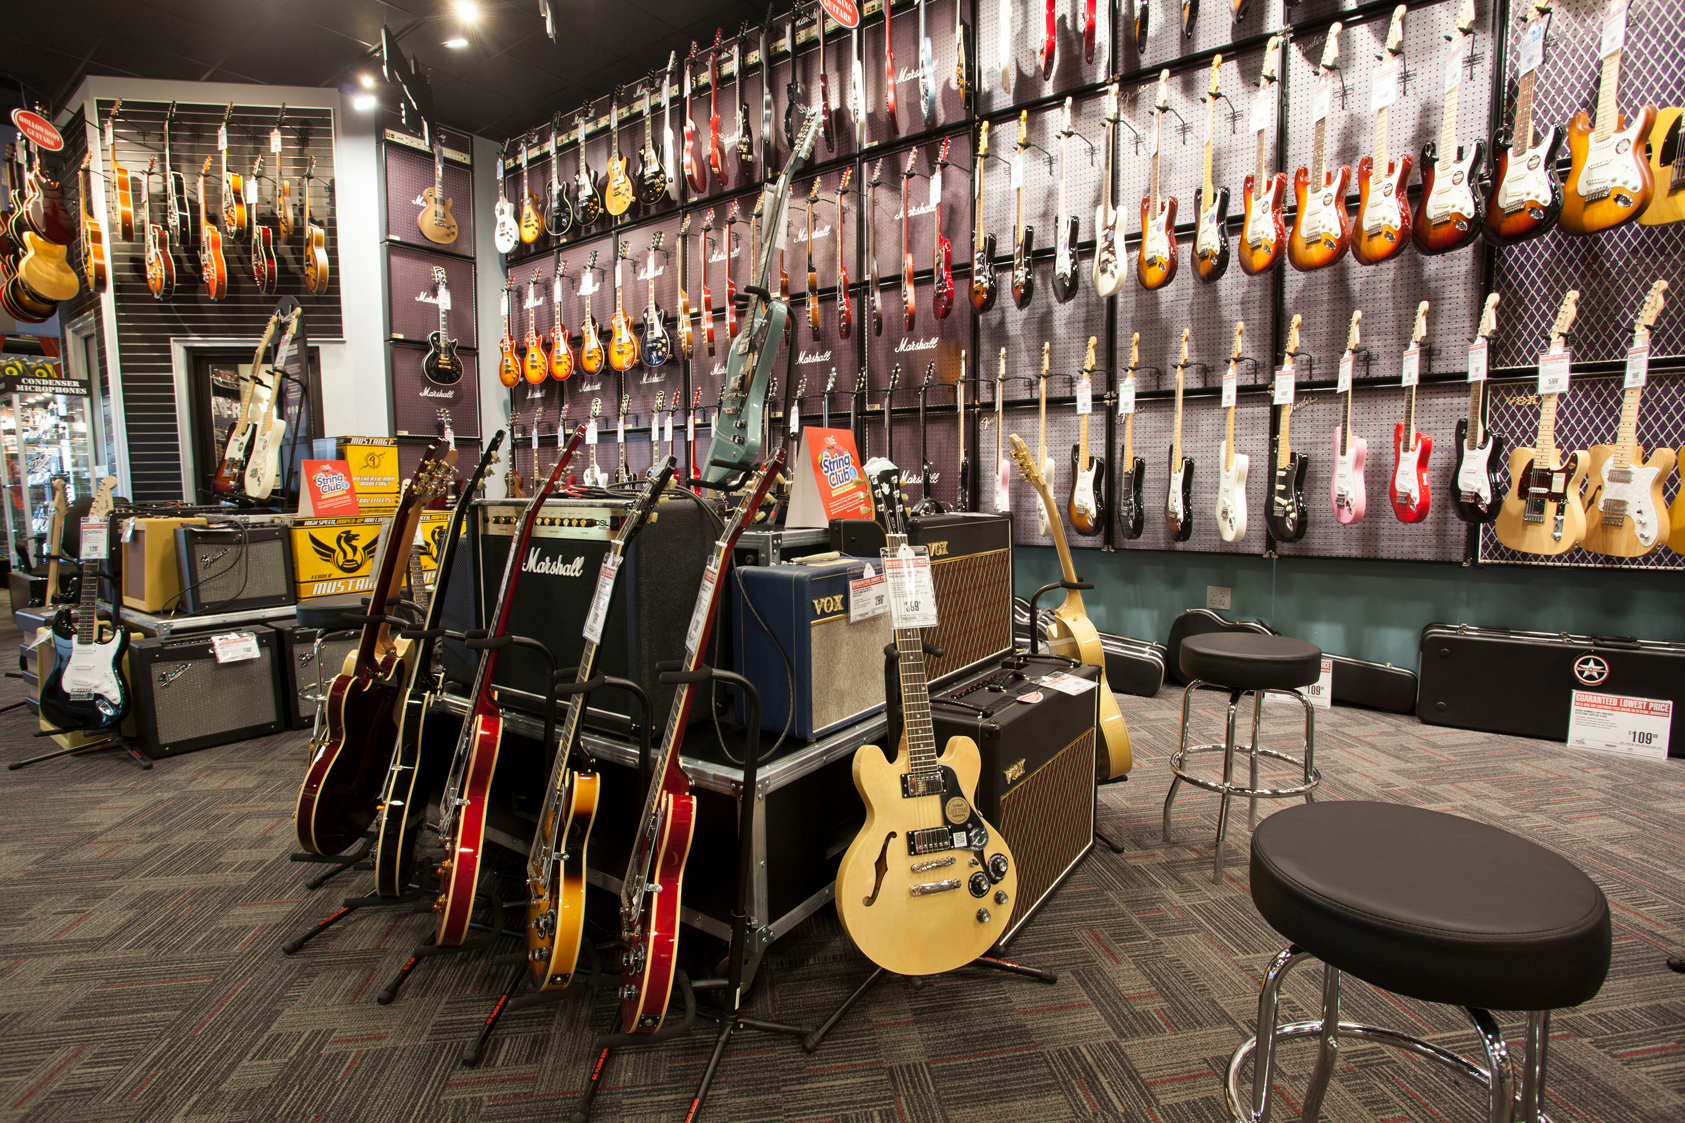 Find 42 Guitar Center in San Francisco, California. List of Guitar Center store locations, business hours, driving maps, phone numbers and more.